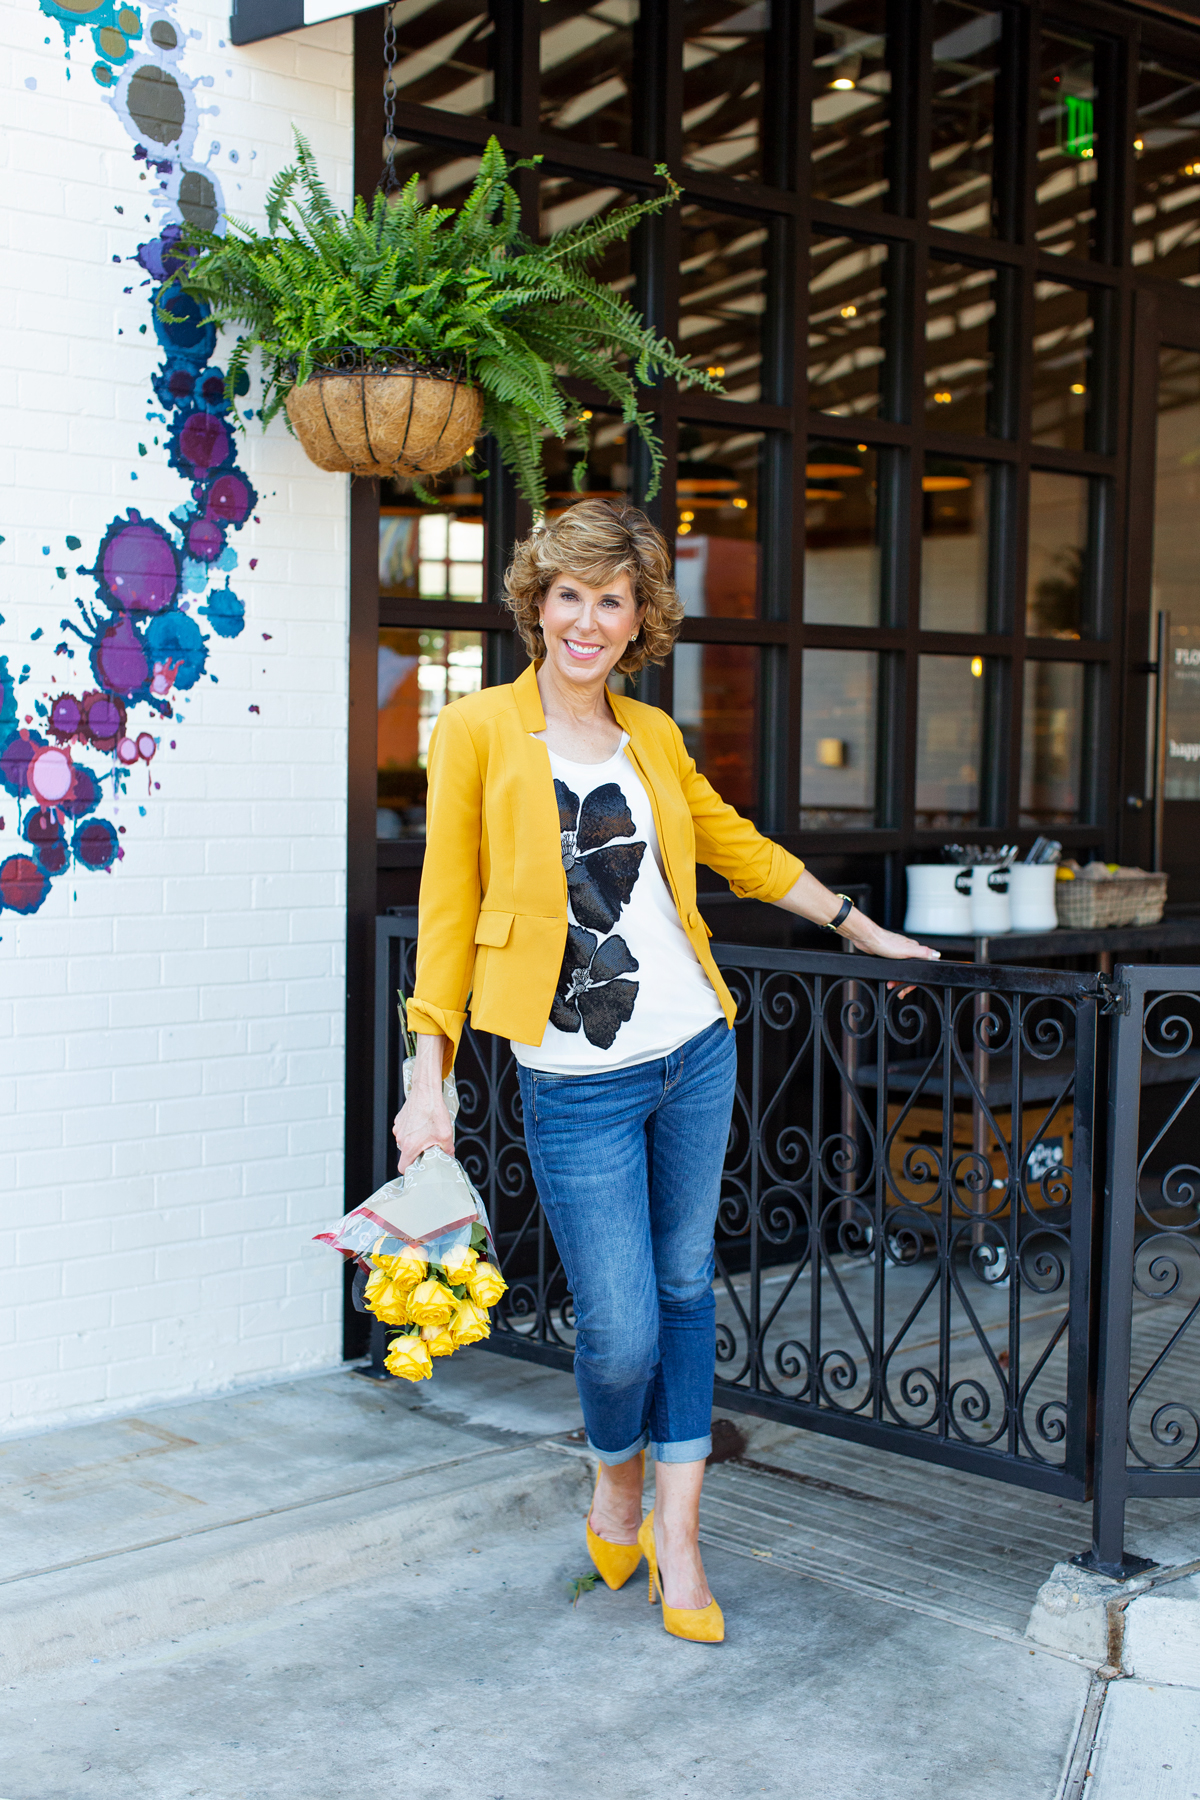 woman with curly hair in yellow blazer holding yellow flowers standing at black gate